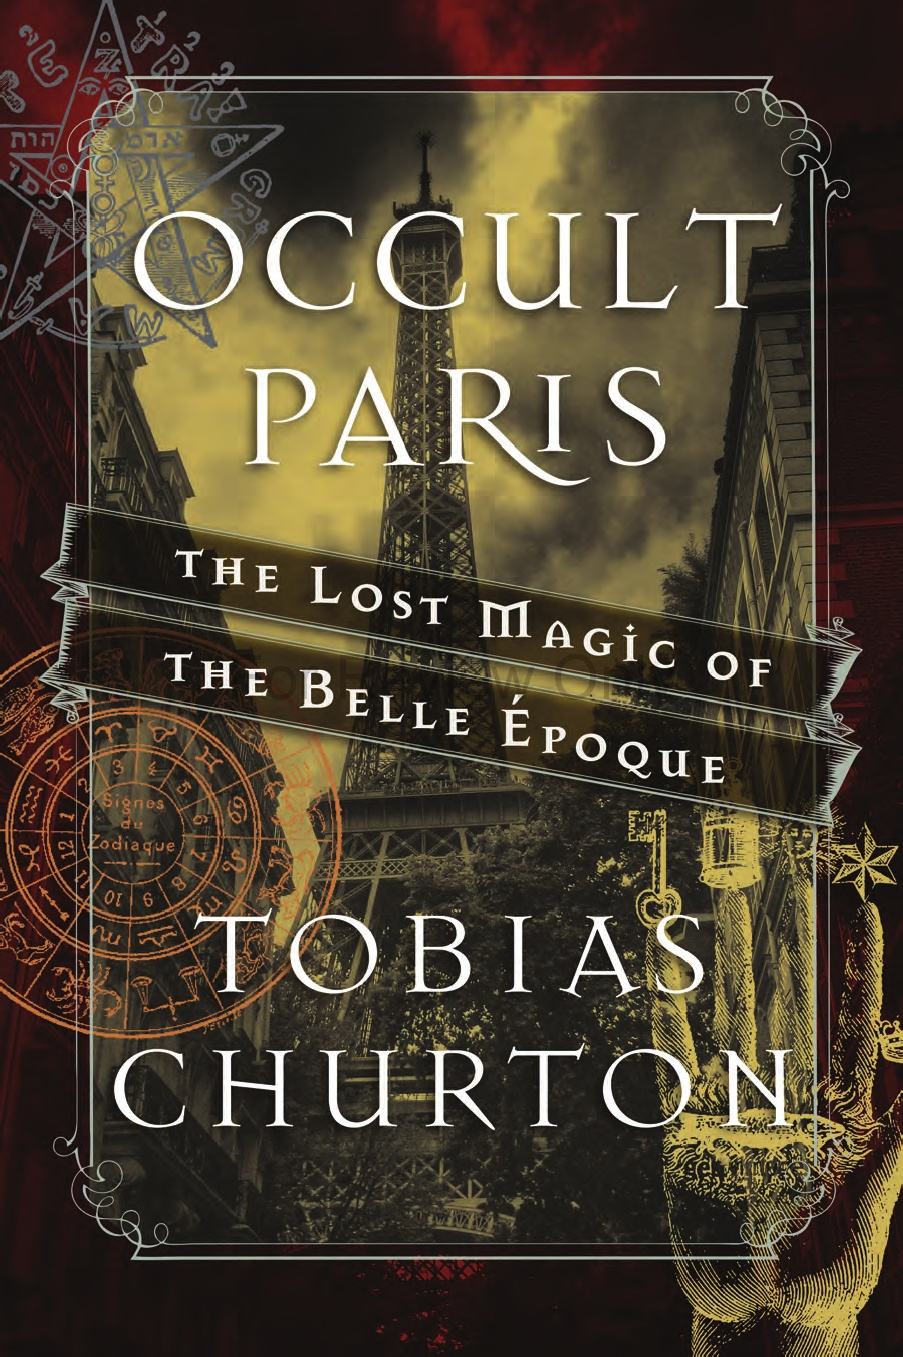 OCCULT PARIS book cover